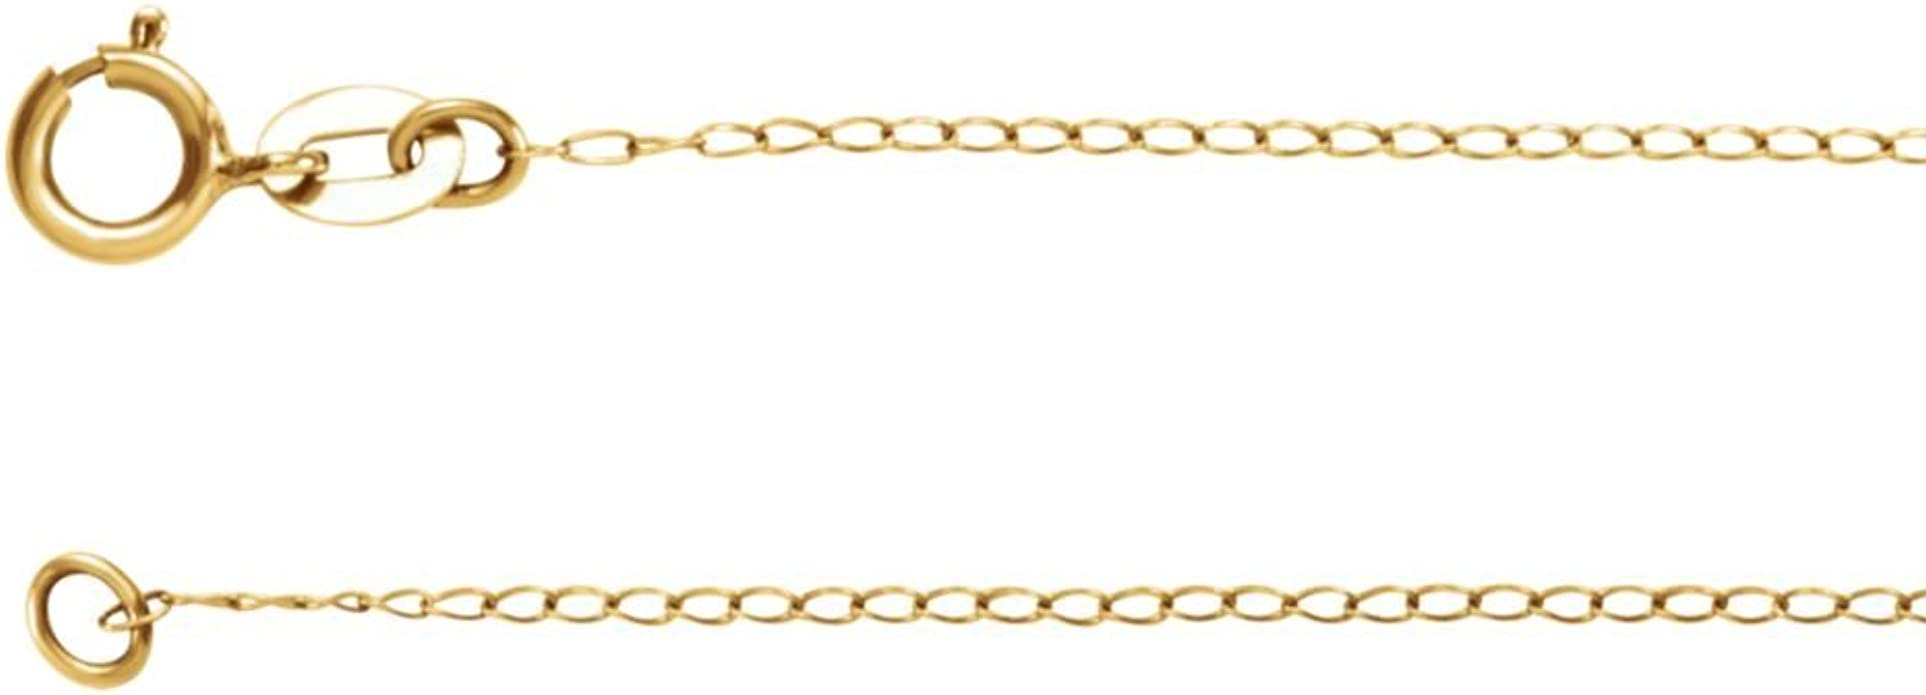 DiamondJewelryNY Stainless Gold Heavy Curb Chain